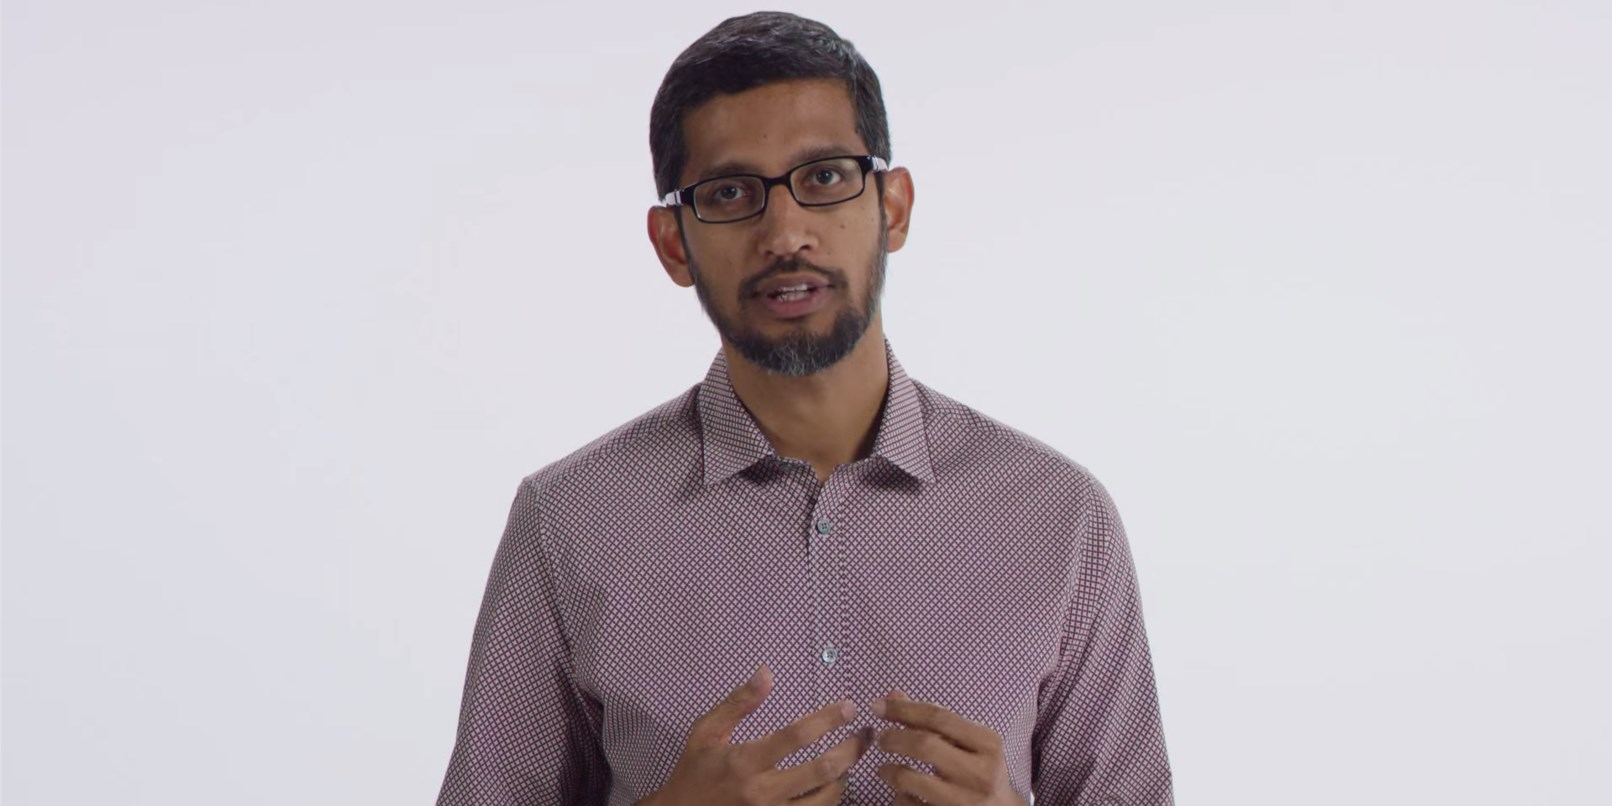 Google's CEO is 14,400 times richer than you